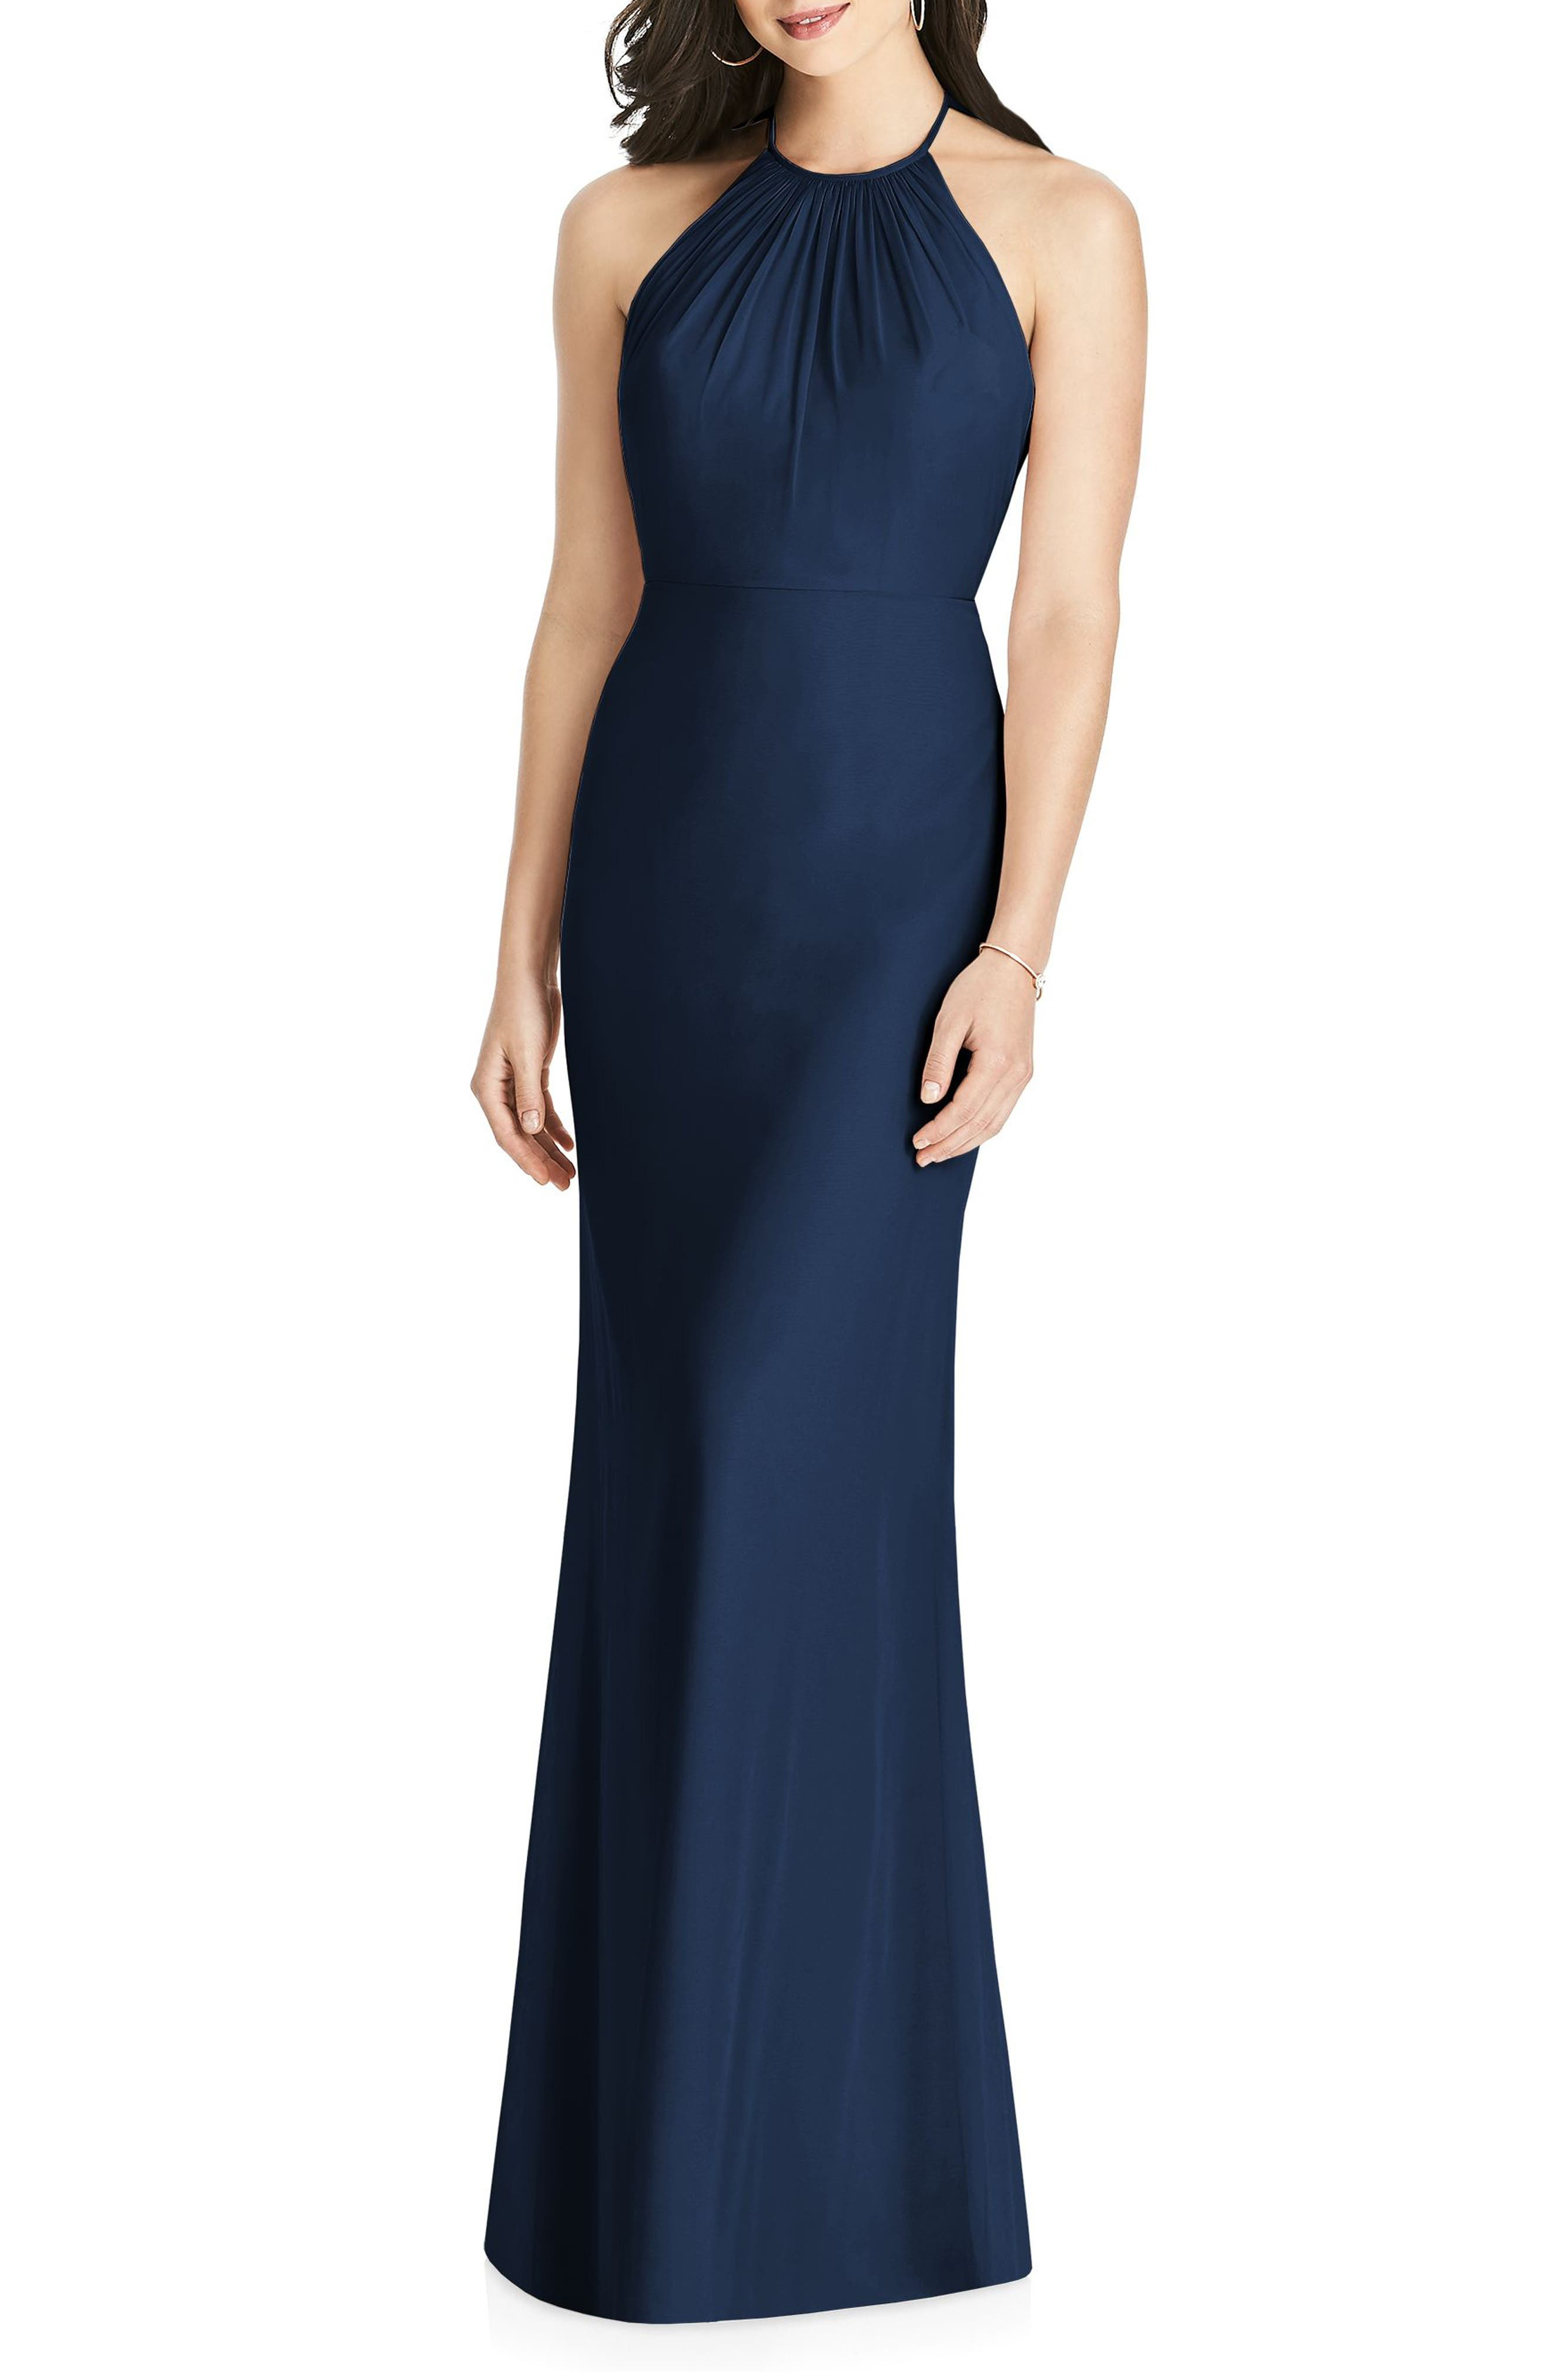 Ruffle Back Chiffon Halter Gown,                         Main,                         color, MIDNIGHT